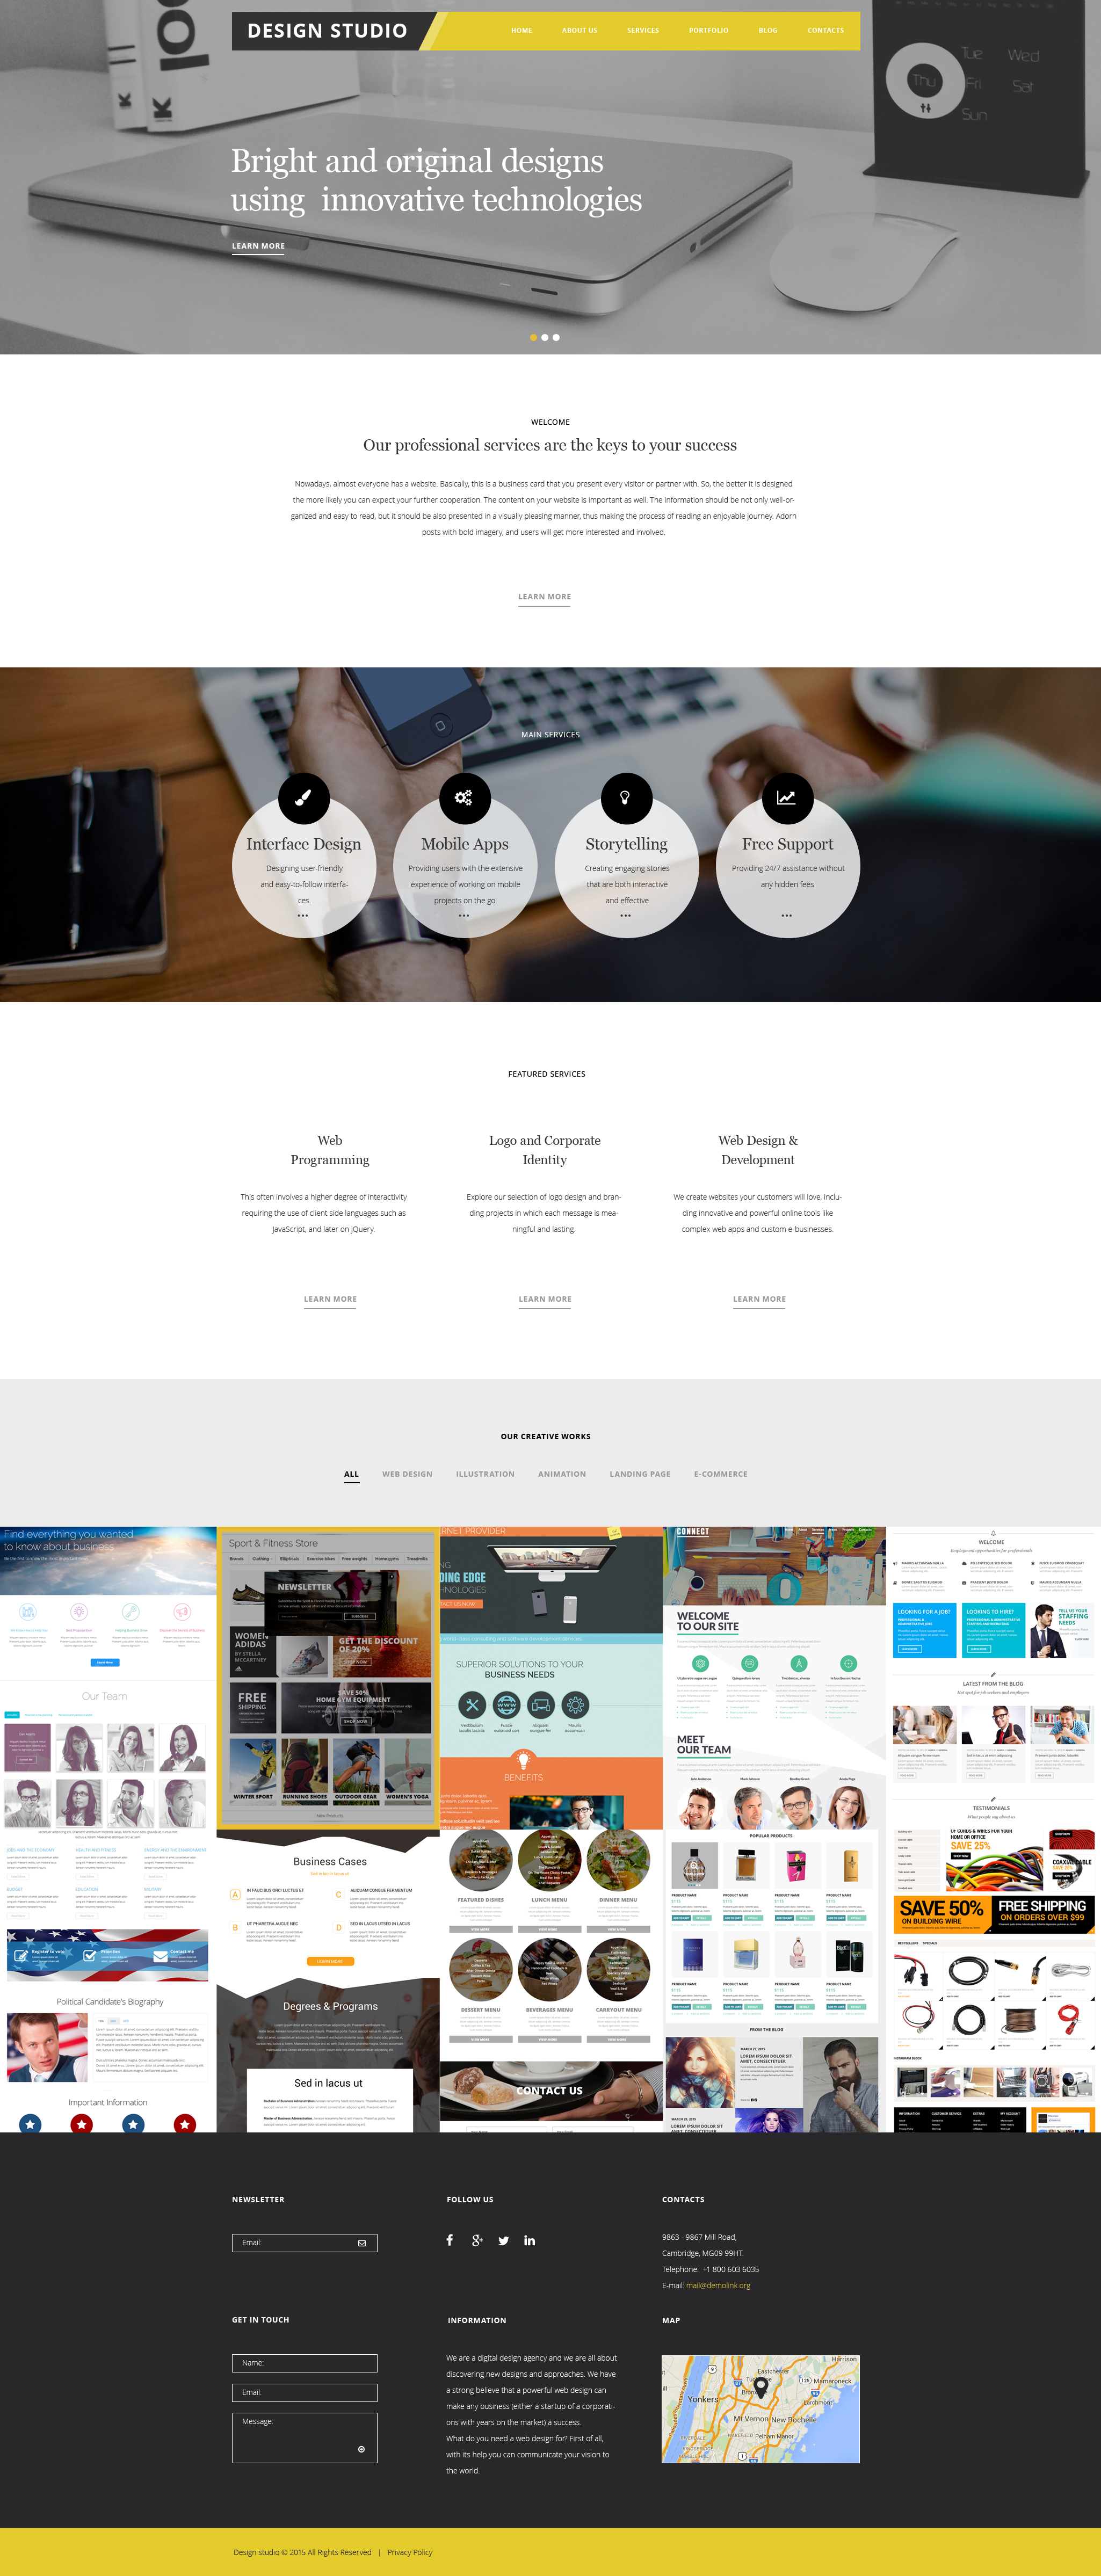 Design Studio WordPress Theme - screenshot